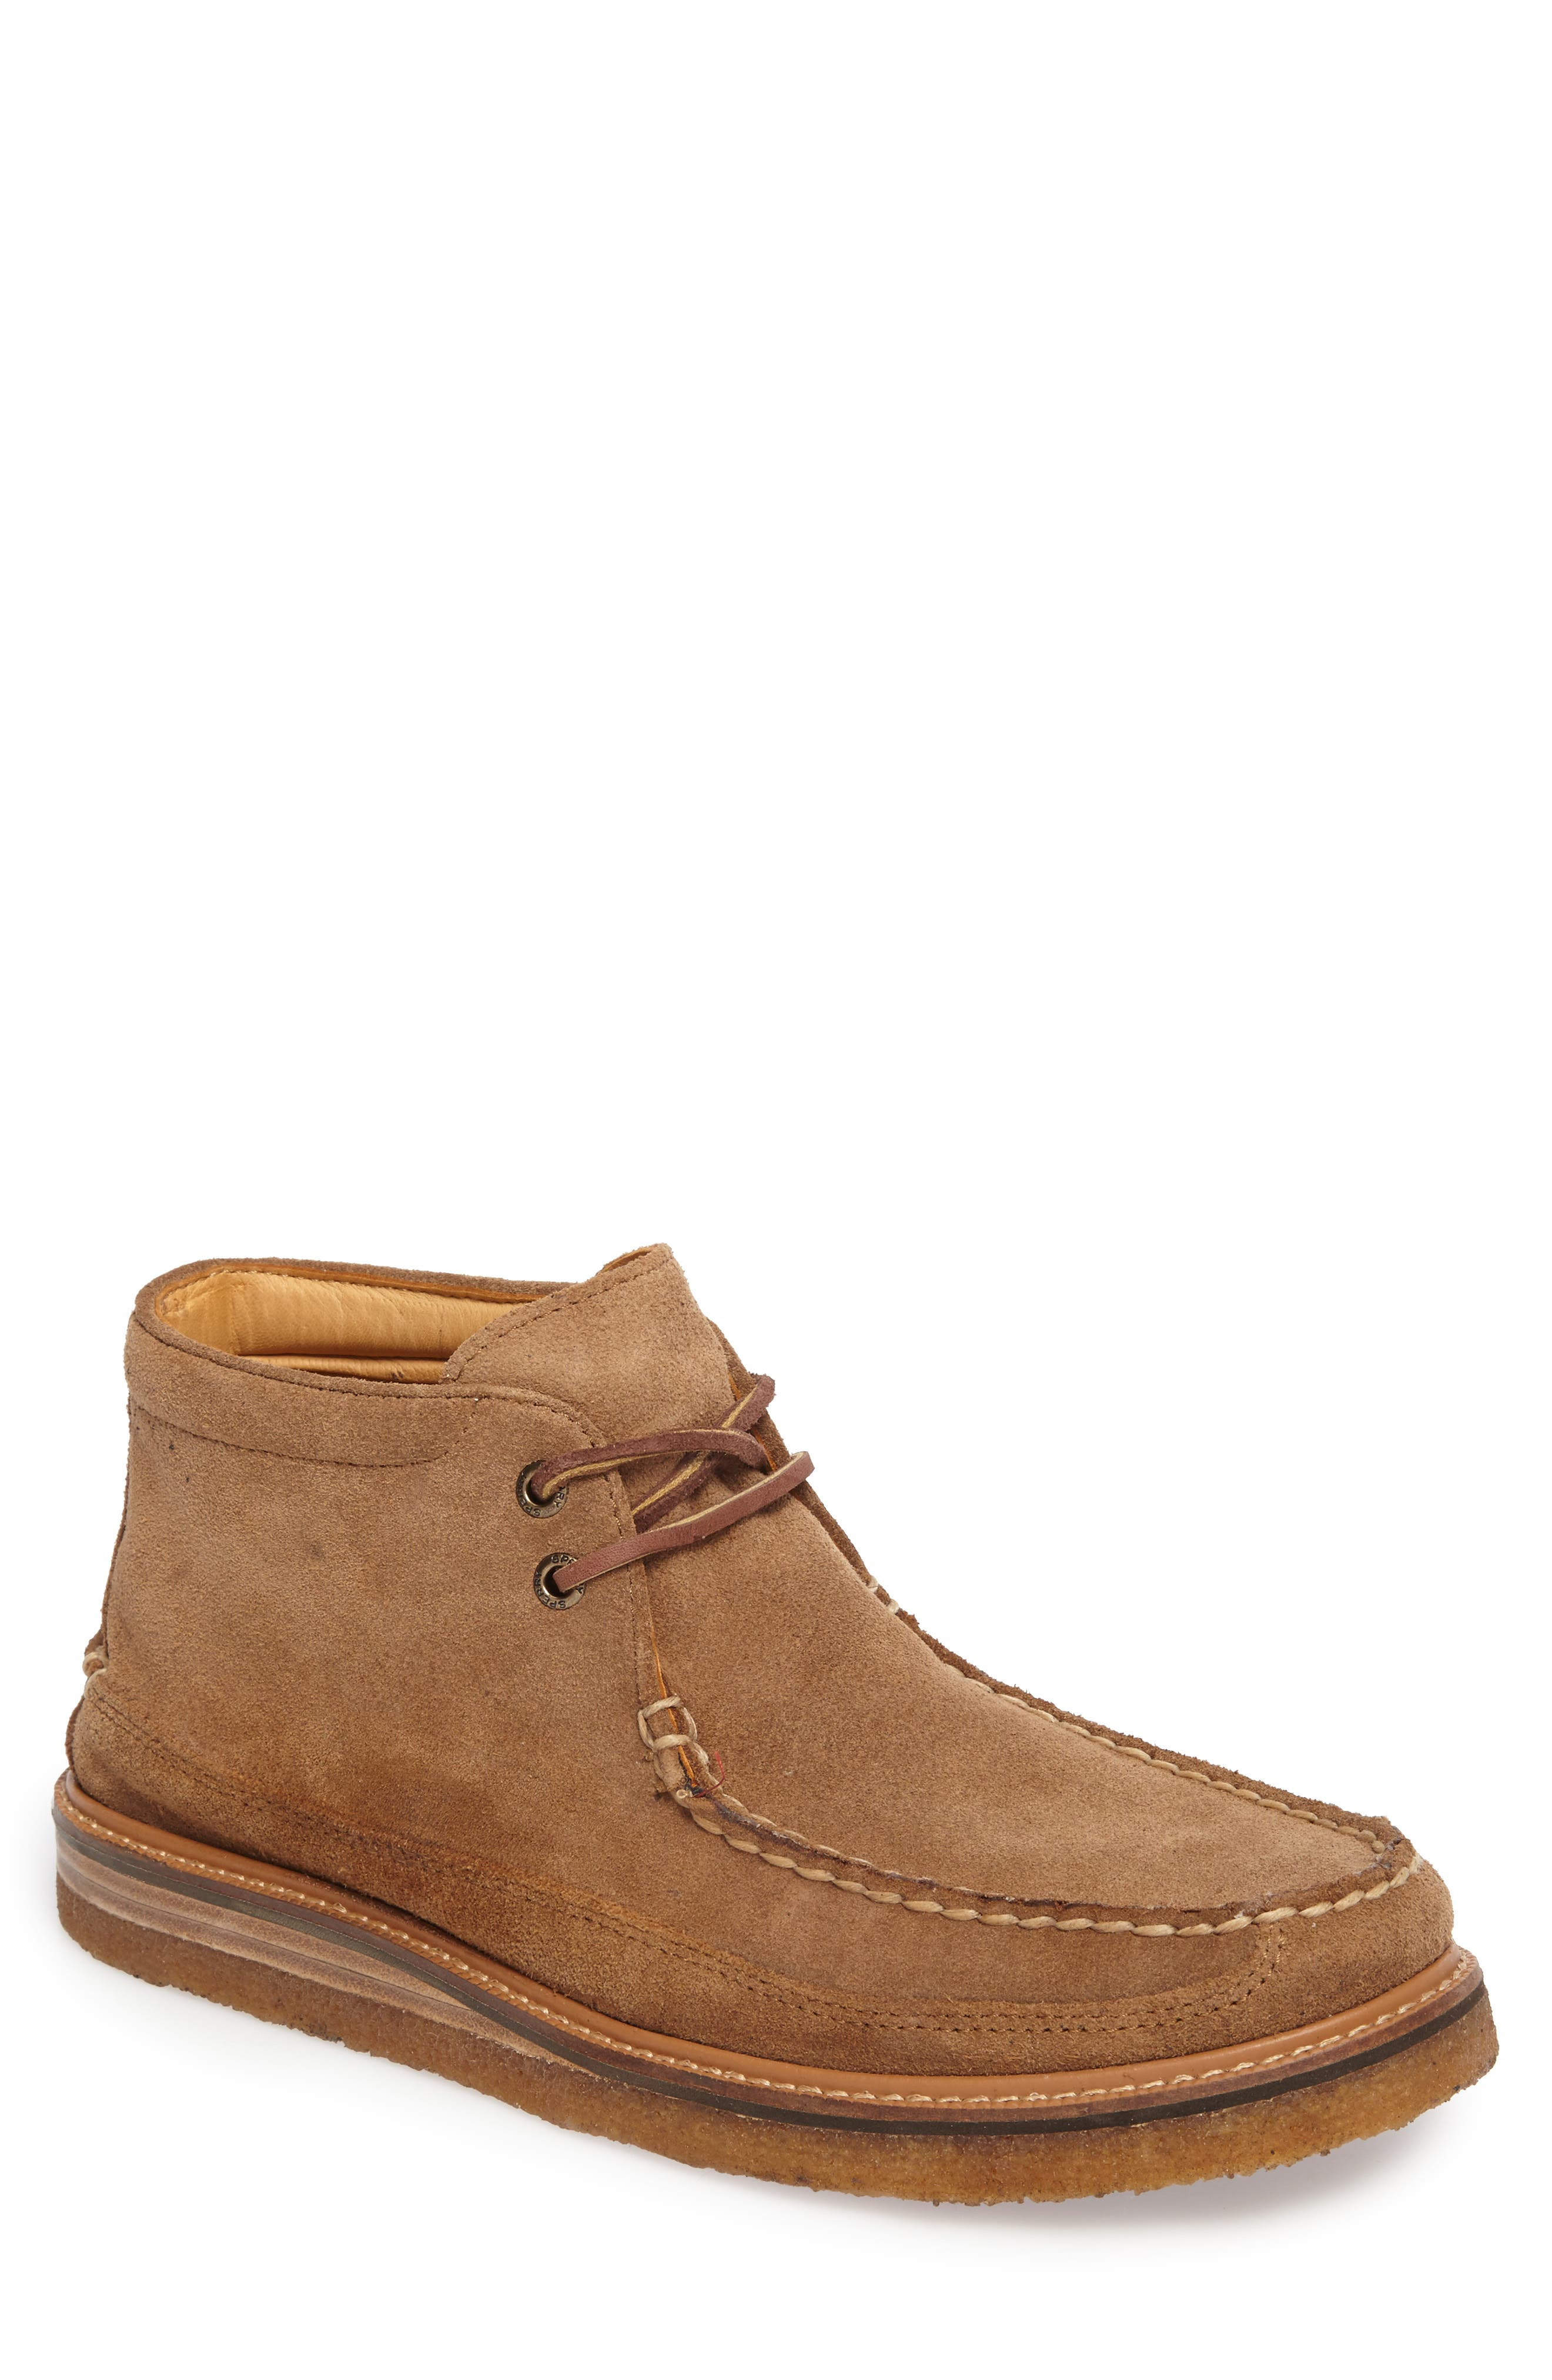 Alternate Image 1 Selected - Sperry Gold Cup Chukka Boot (Men)